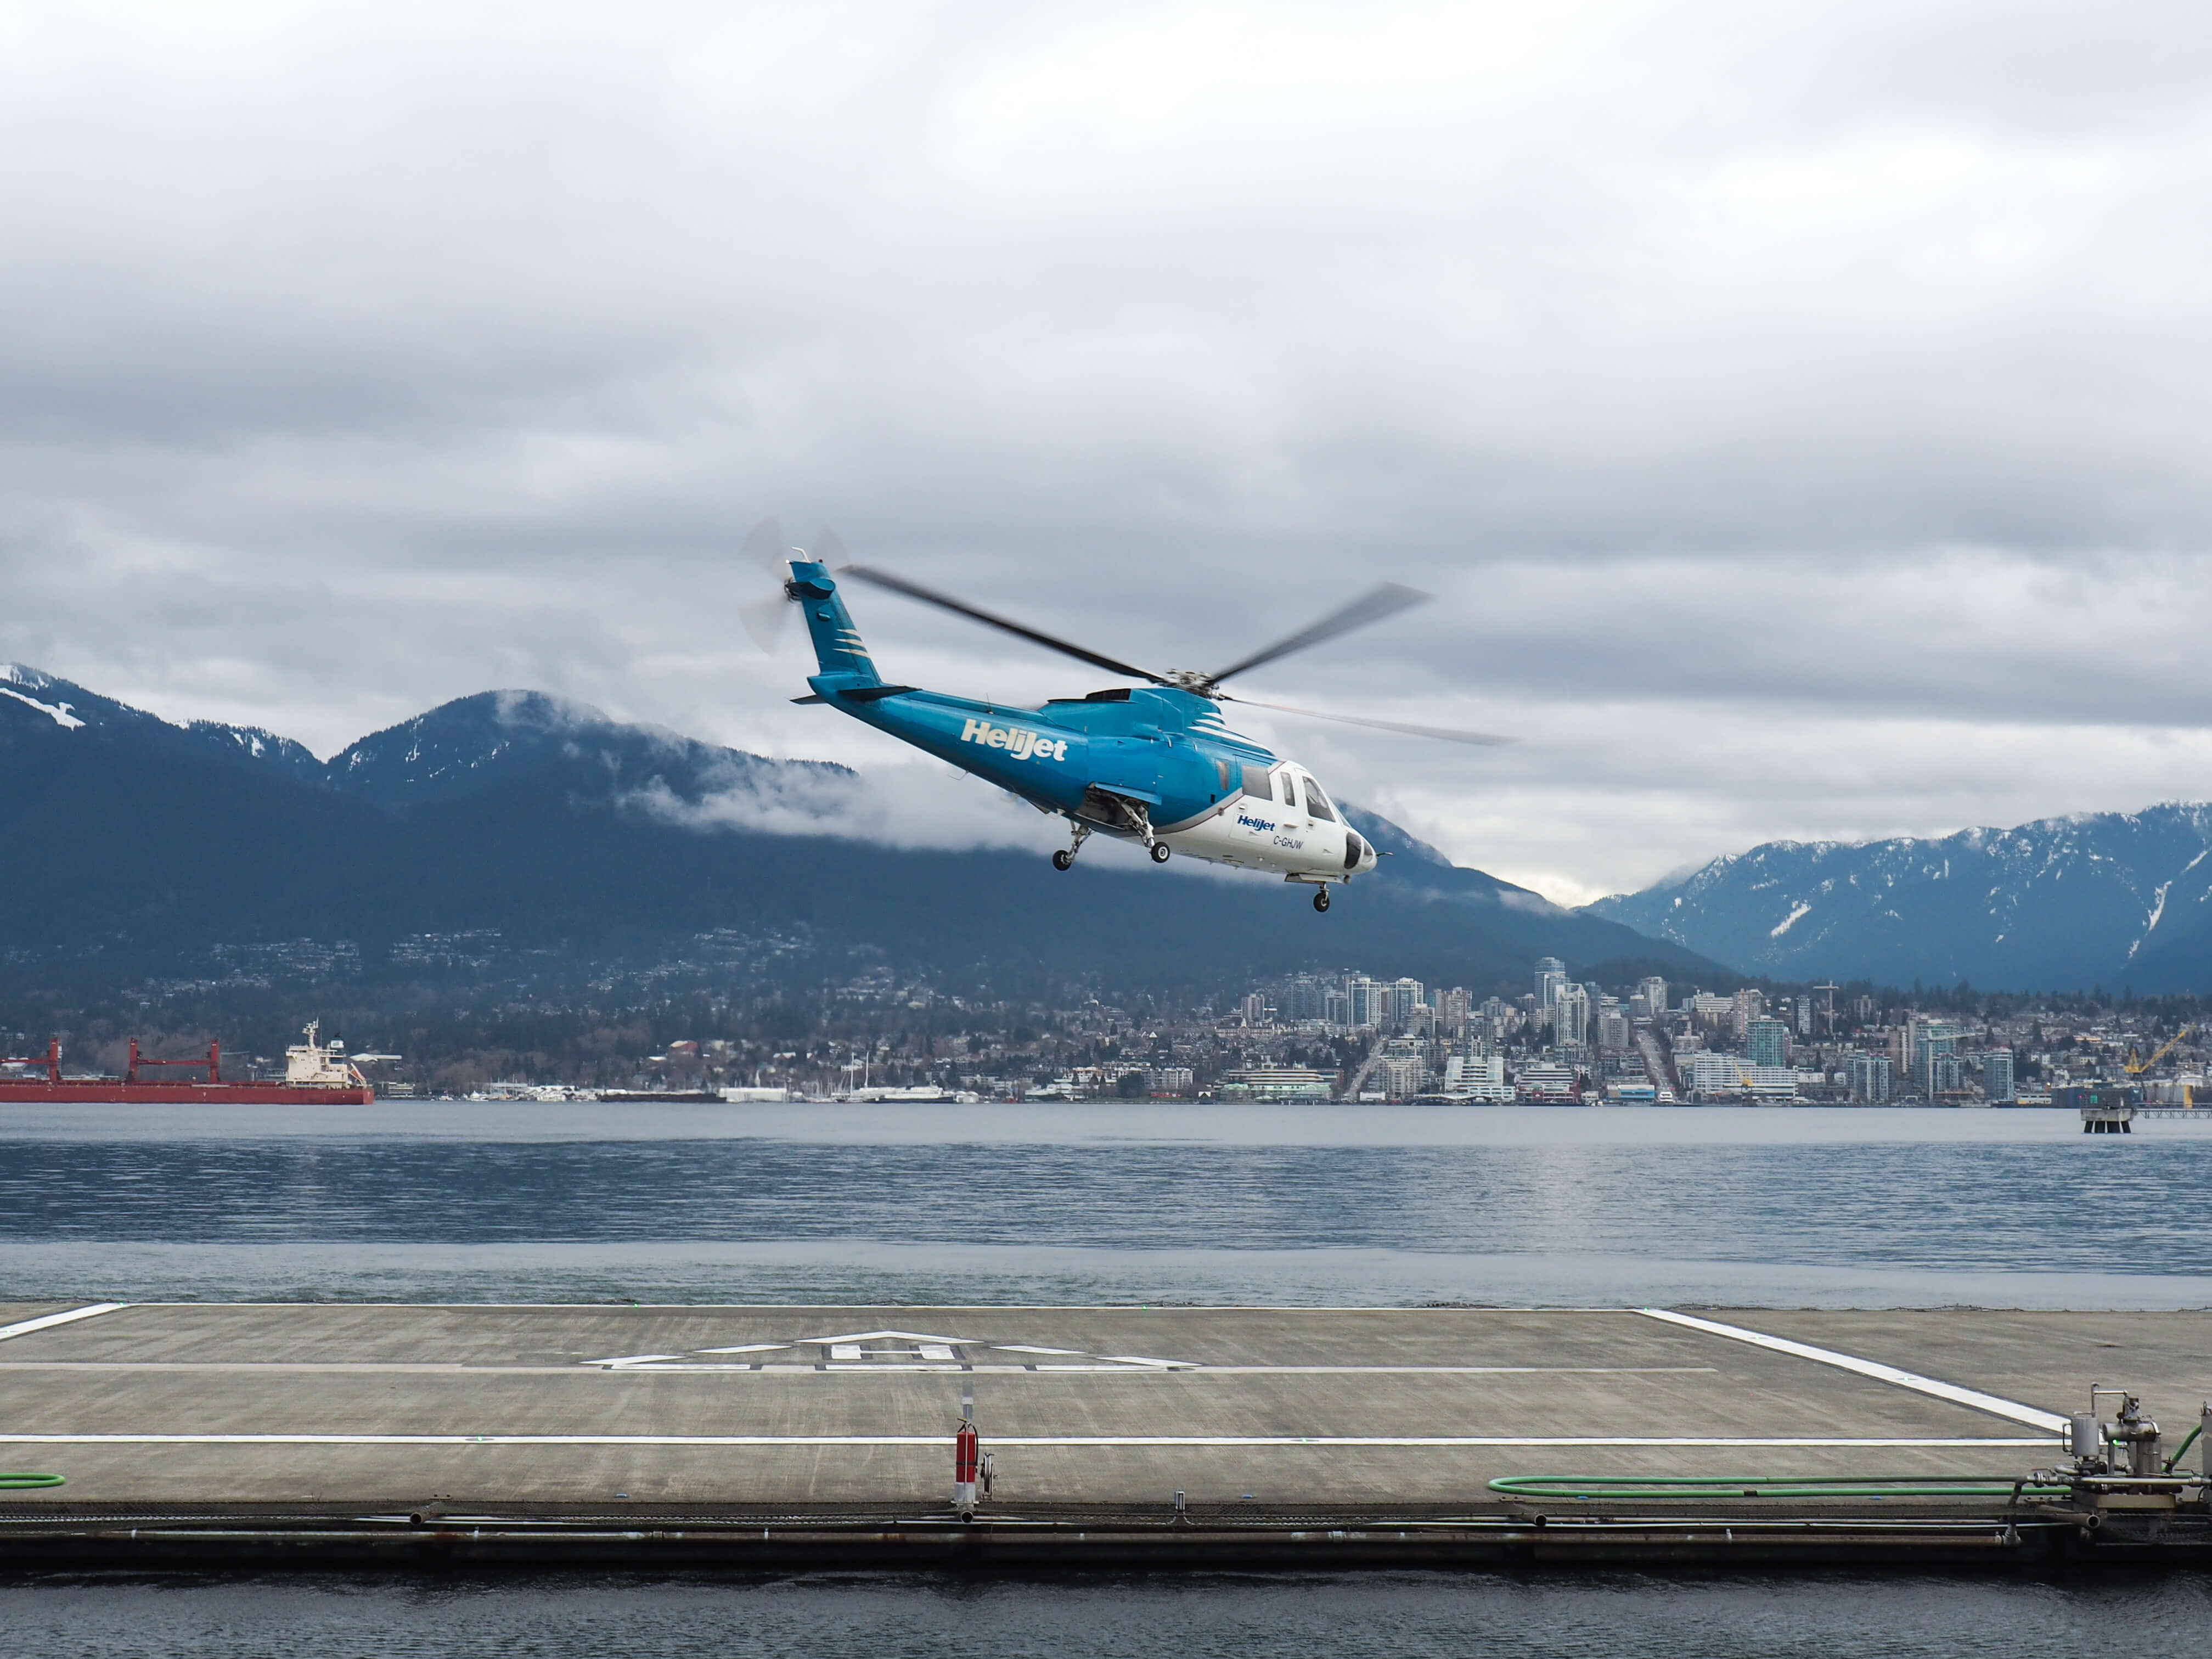 Getting from Vancouver to Victoria